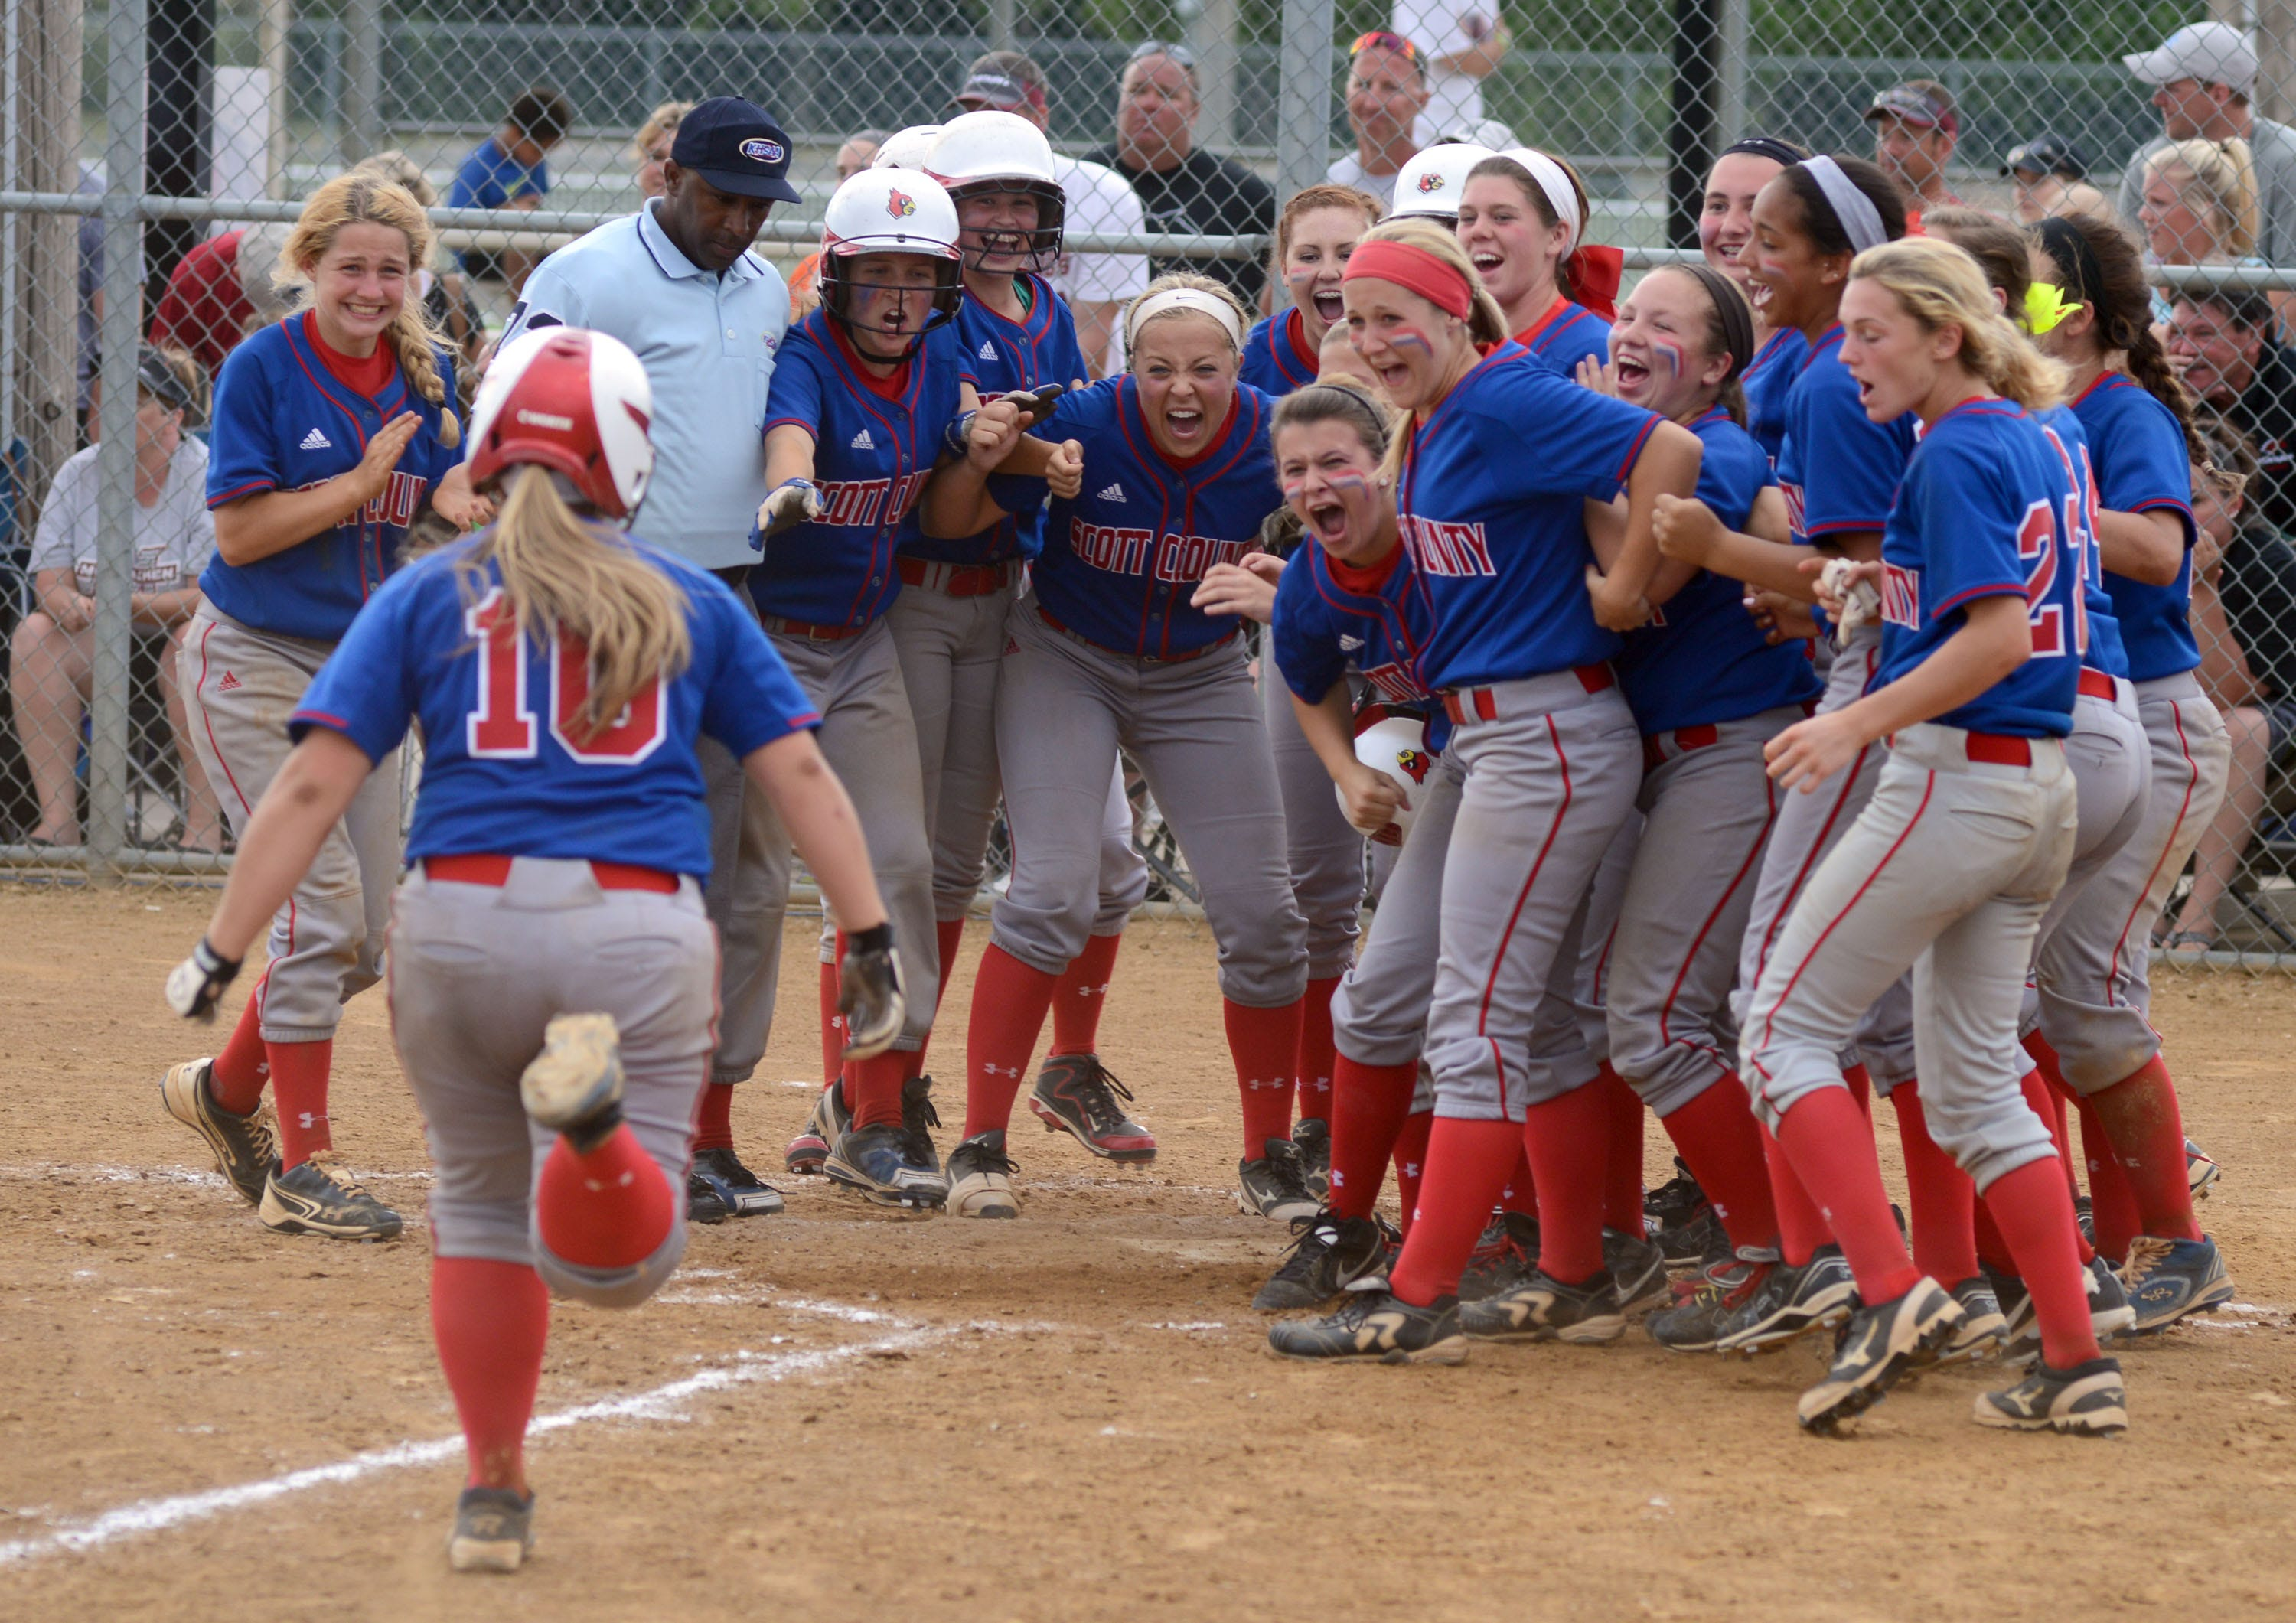 Taylor Ricketts comes home to a celebration after the first grand slam of her career gives Scott County a 6-2 lead Saturday. It was a happier moment for Ricketts, who committed three errors in an 11-1 loss in the first game against McCracken County.